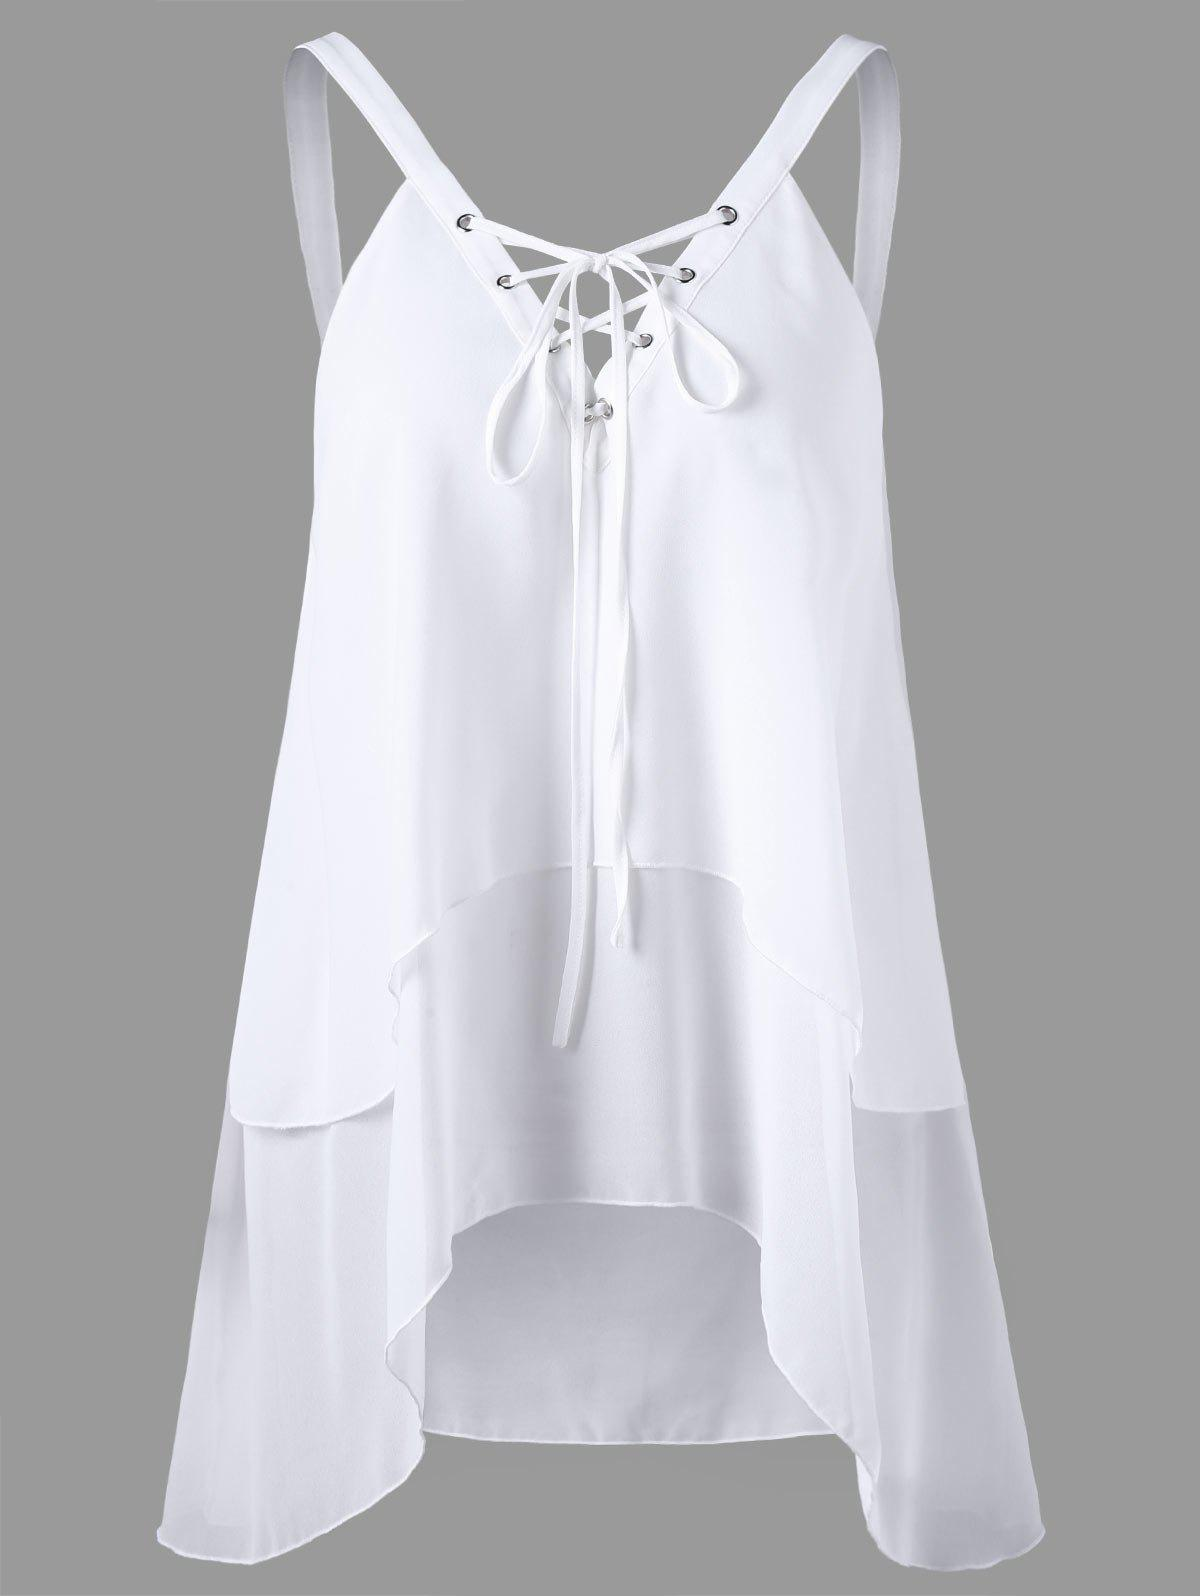 Criss Cross Front Layered Sleeveless Chiffon BlouseWOMEN<br><br>Size: M; Color: WHITE; Occasion: Casual; Style: Casual; Material: Polyester; Fabric Type: Chiffon; Shirt Length: Regular; Sleeve Length: Sleeveless; Collar: V-Neck; Pattern Type: Solid; Embellishment: Criss-Cross; Season: Summer; Weight: 0.2000kg; Package Contents: 1 x Blouse;